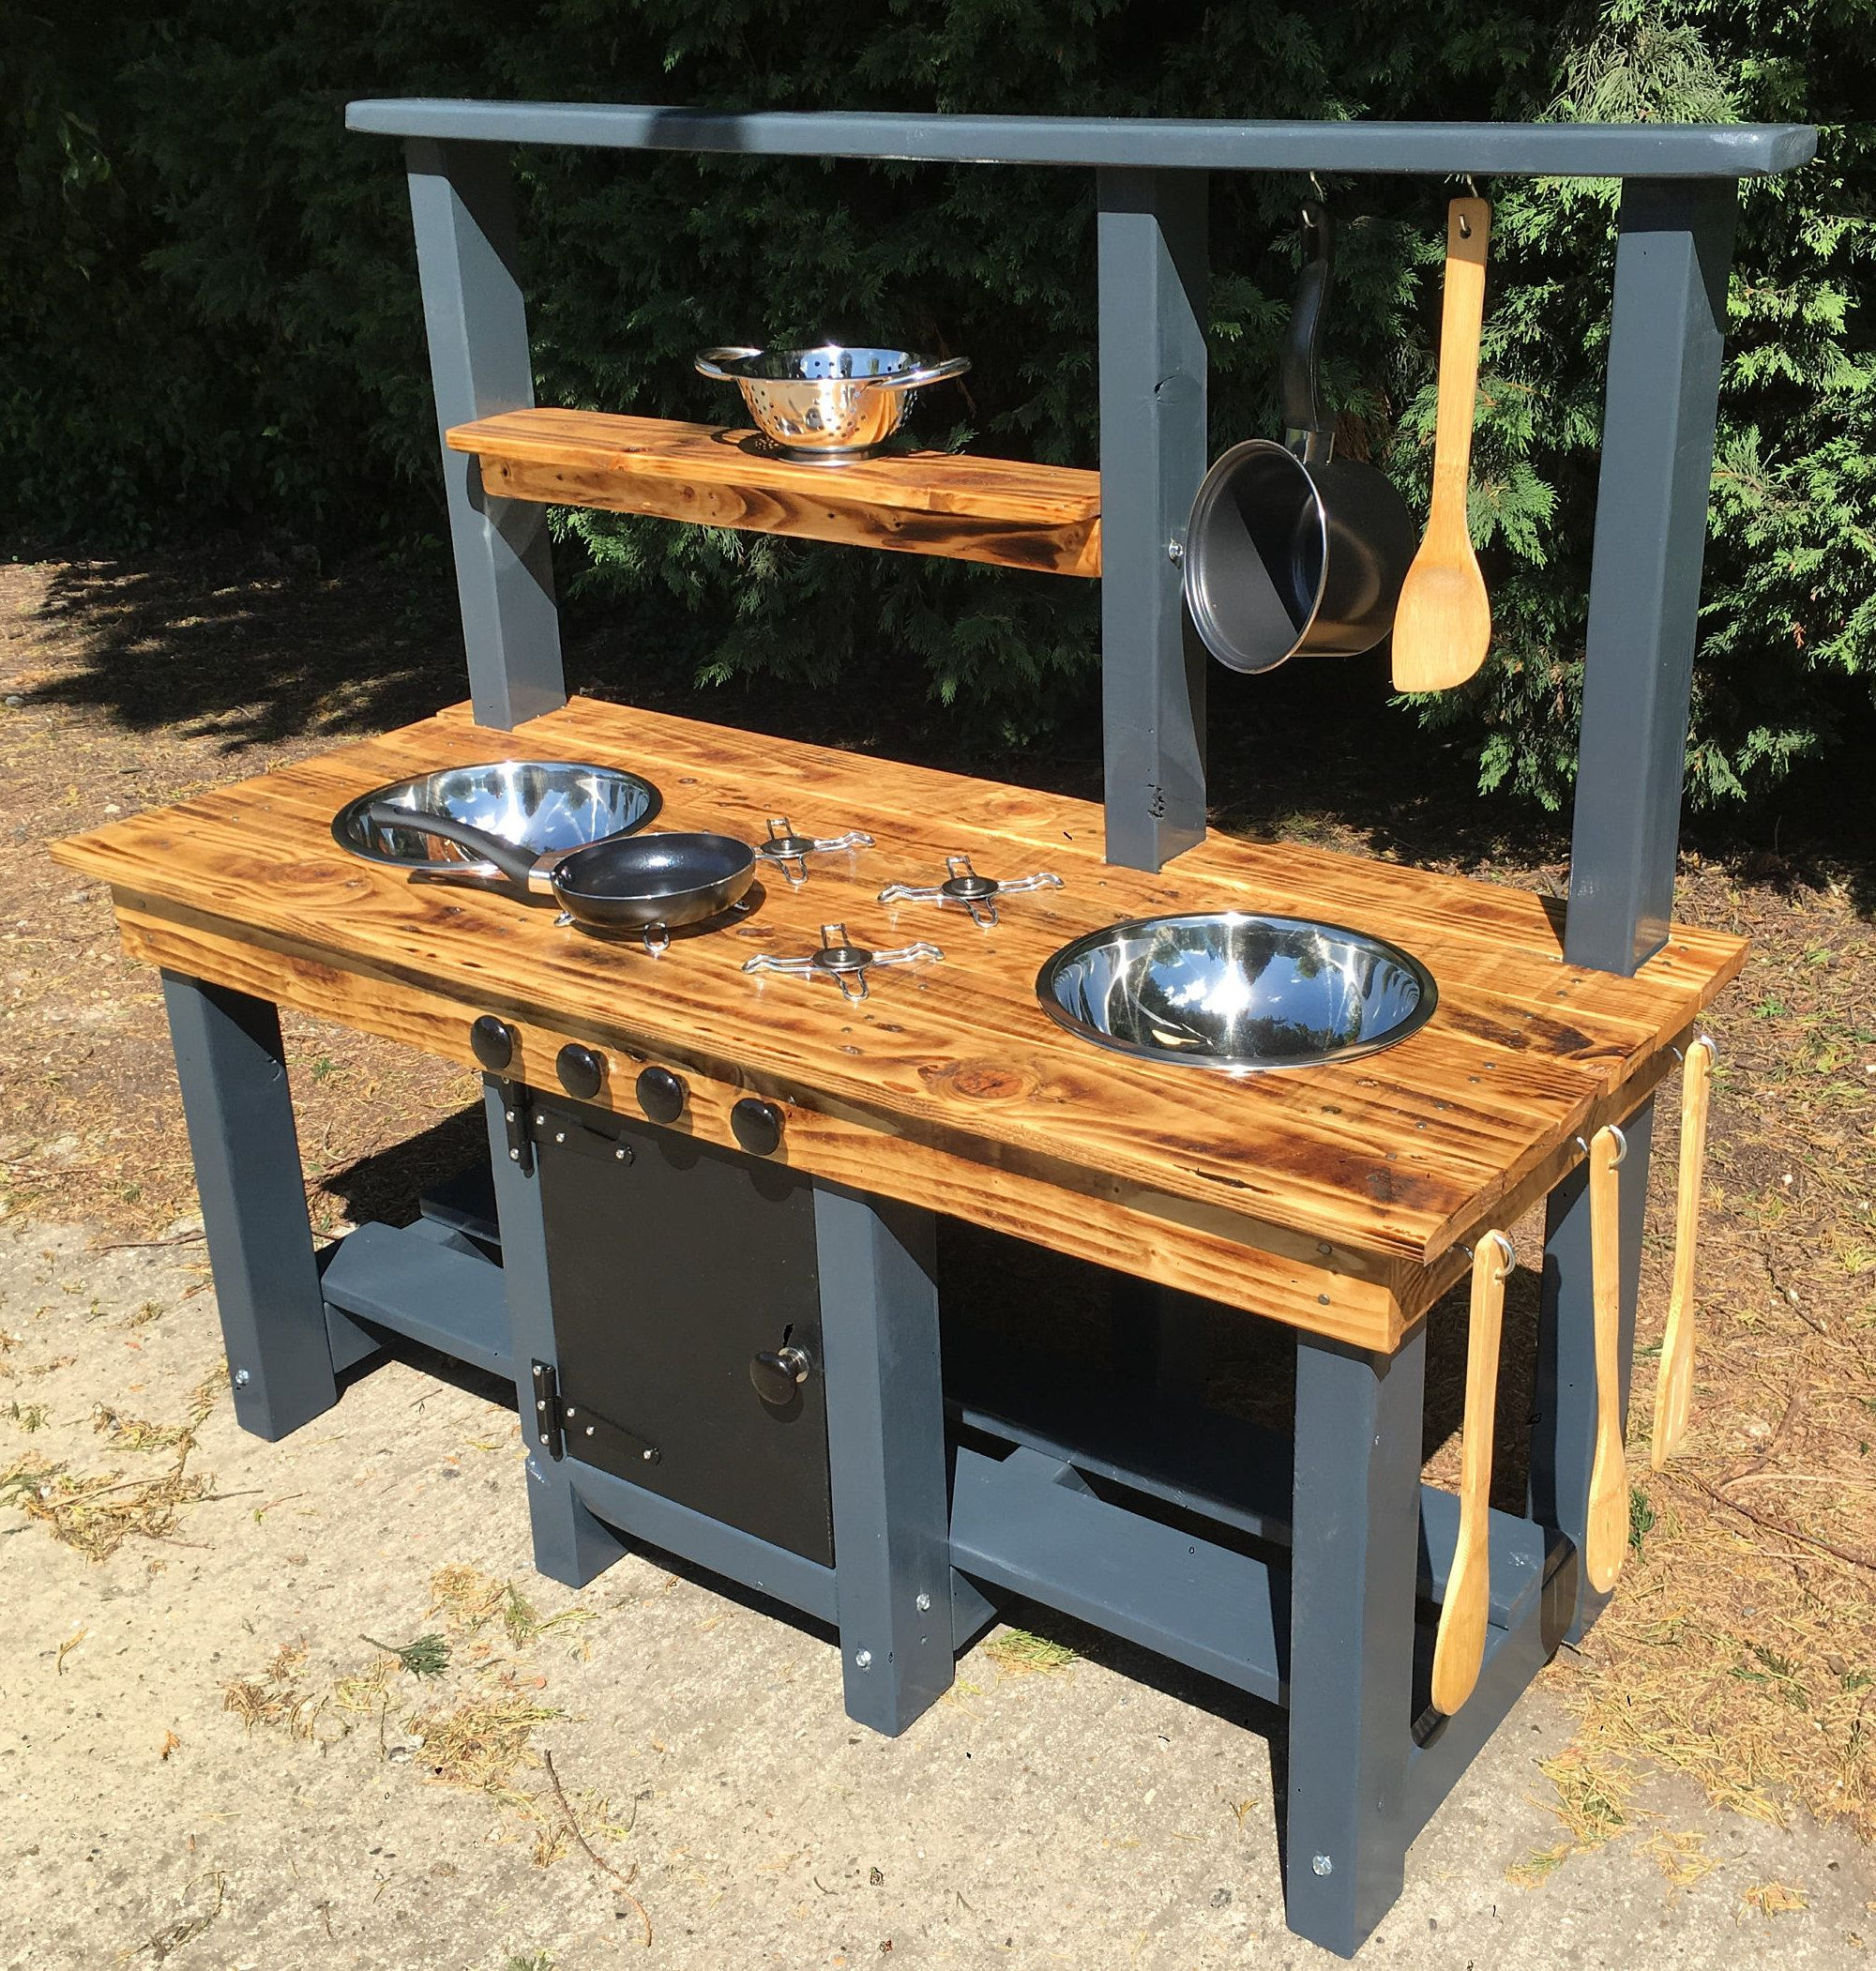 mud kitchen frame made from pressure treated timber es in blue